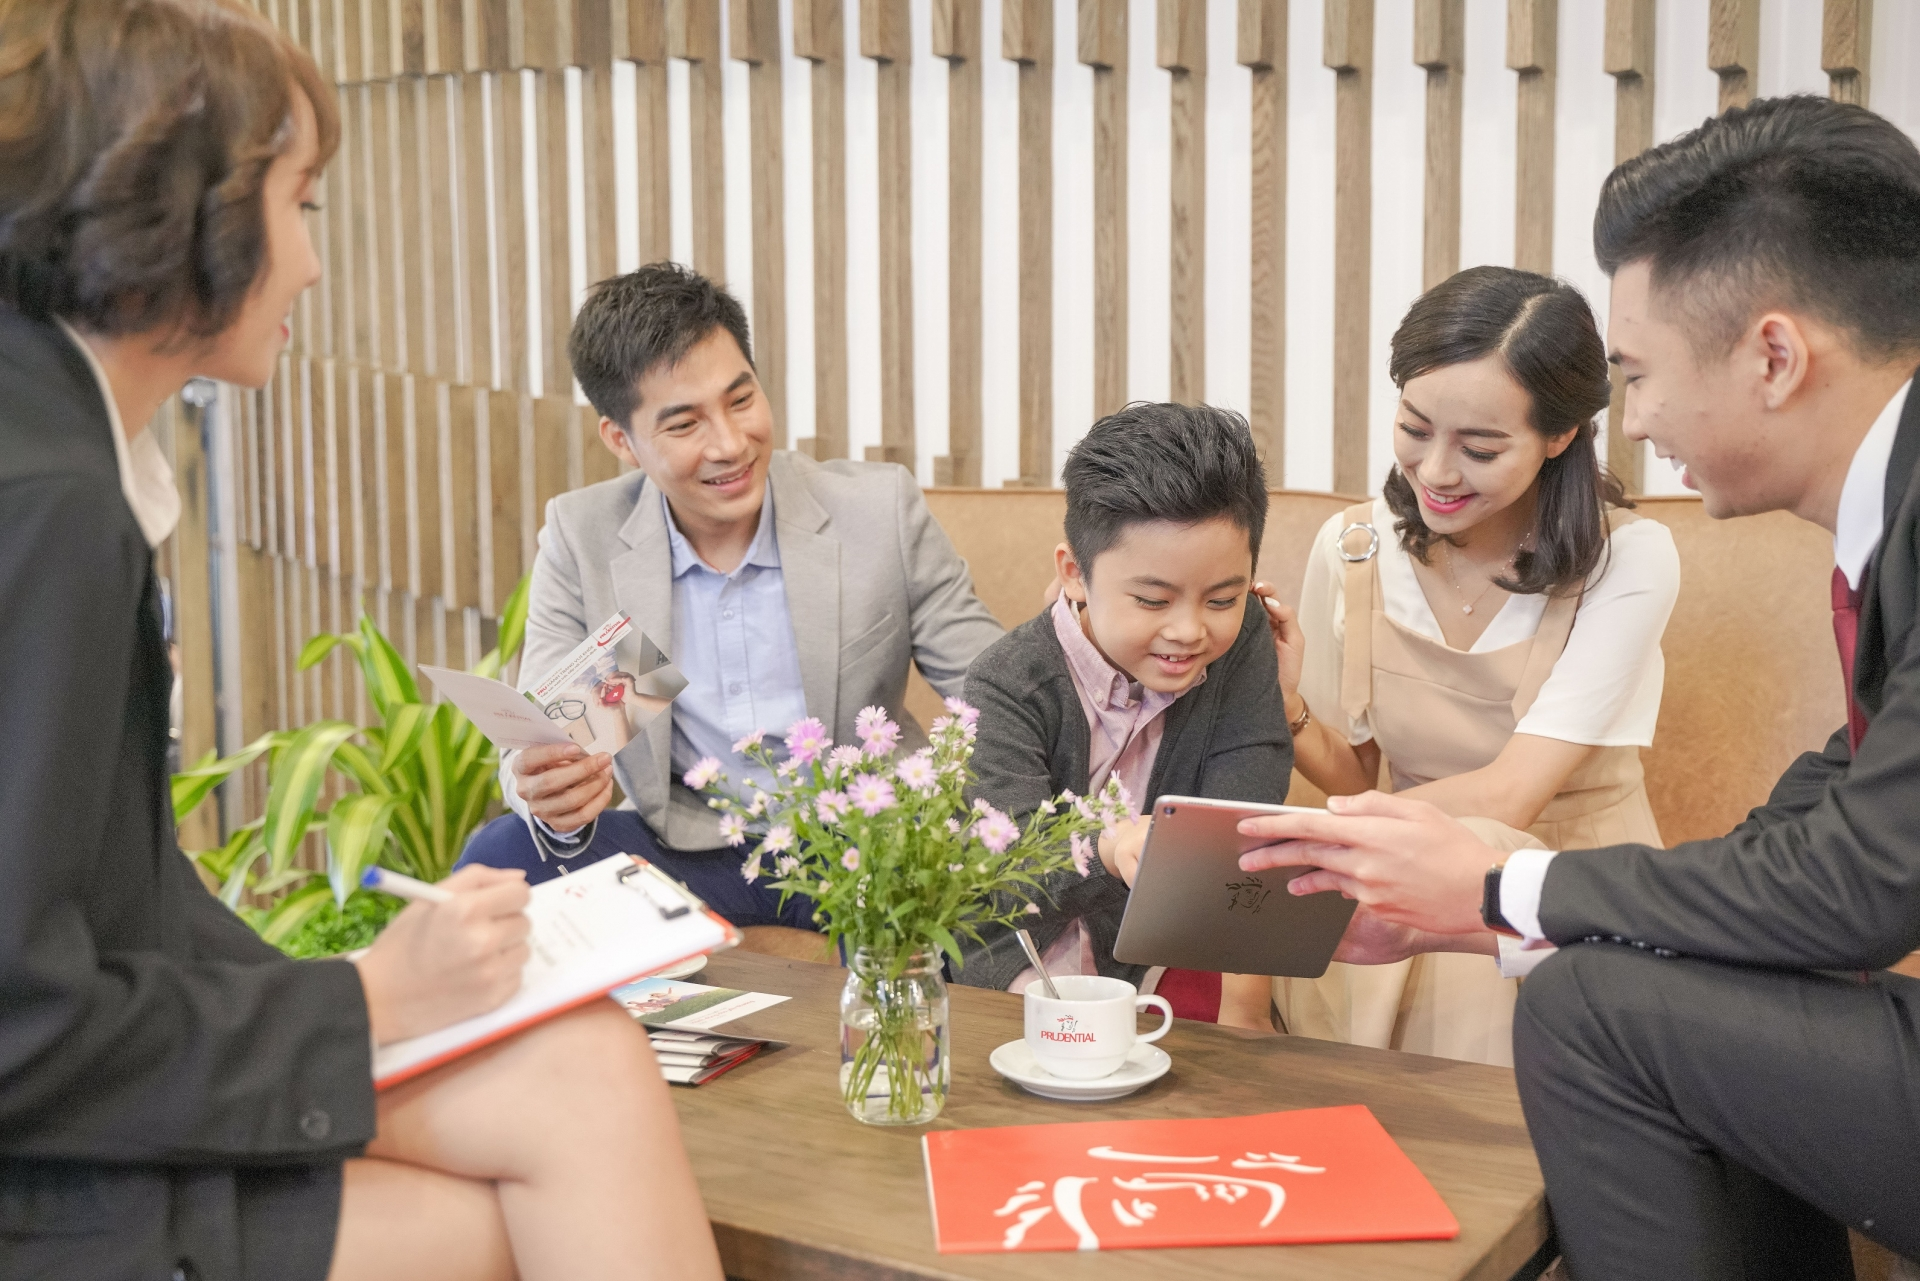 prudential vietnam reaffirms sustainable growth goals in 2020